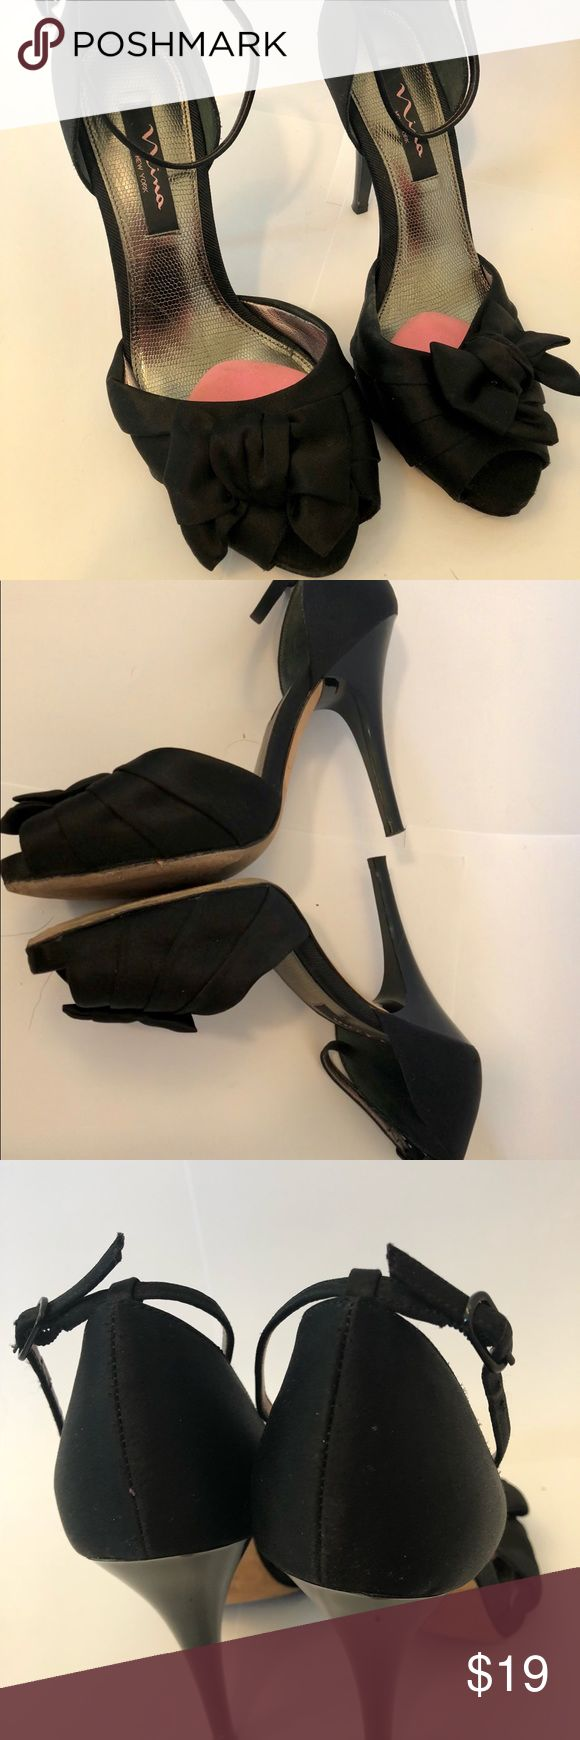 Nina peep toe heels with bow accent Satiny black heels with bow accent on the toe. Great shoes for going out. Added a toe box pad for increased comfort while dancing. In worn condition with slight scuffs on the front of the shoe(visible in picture). Not noticeable while wearing. Nina Shoes Heels